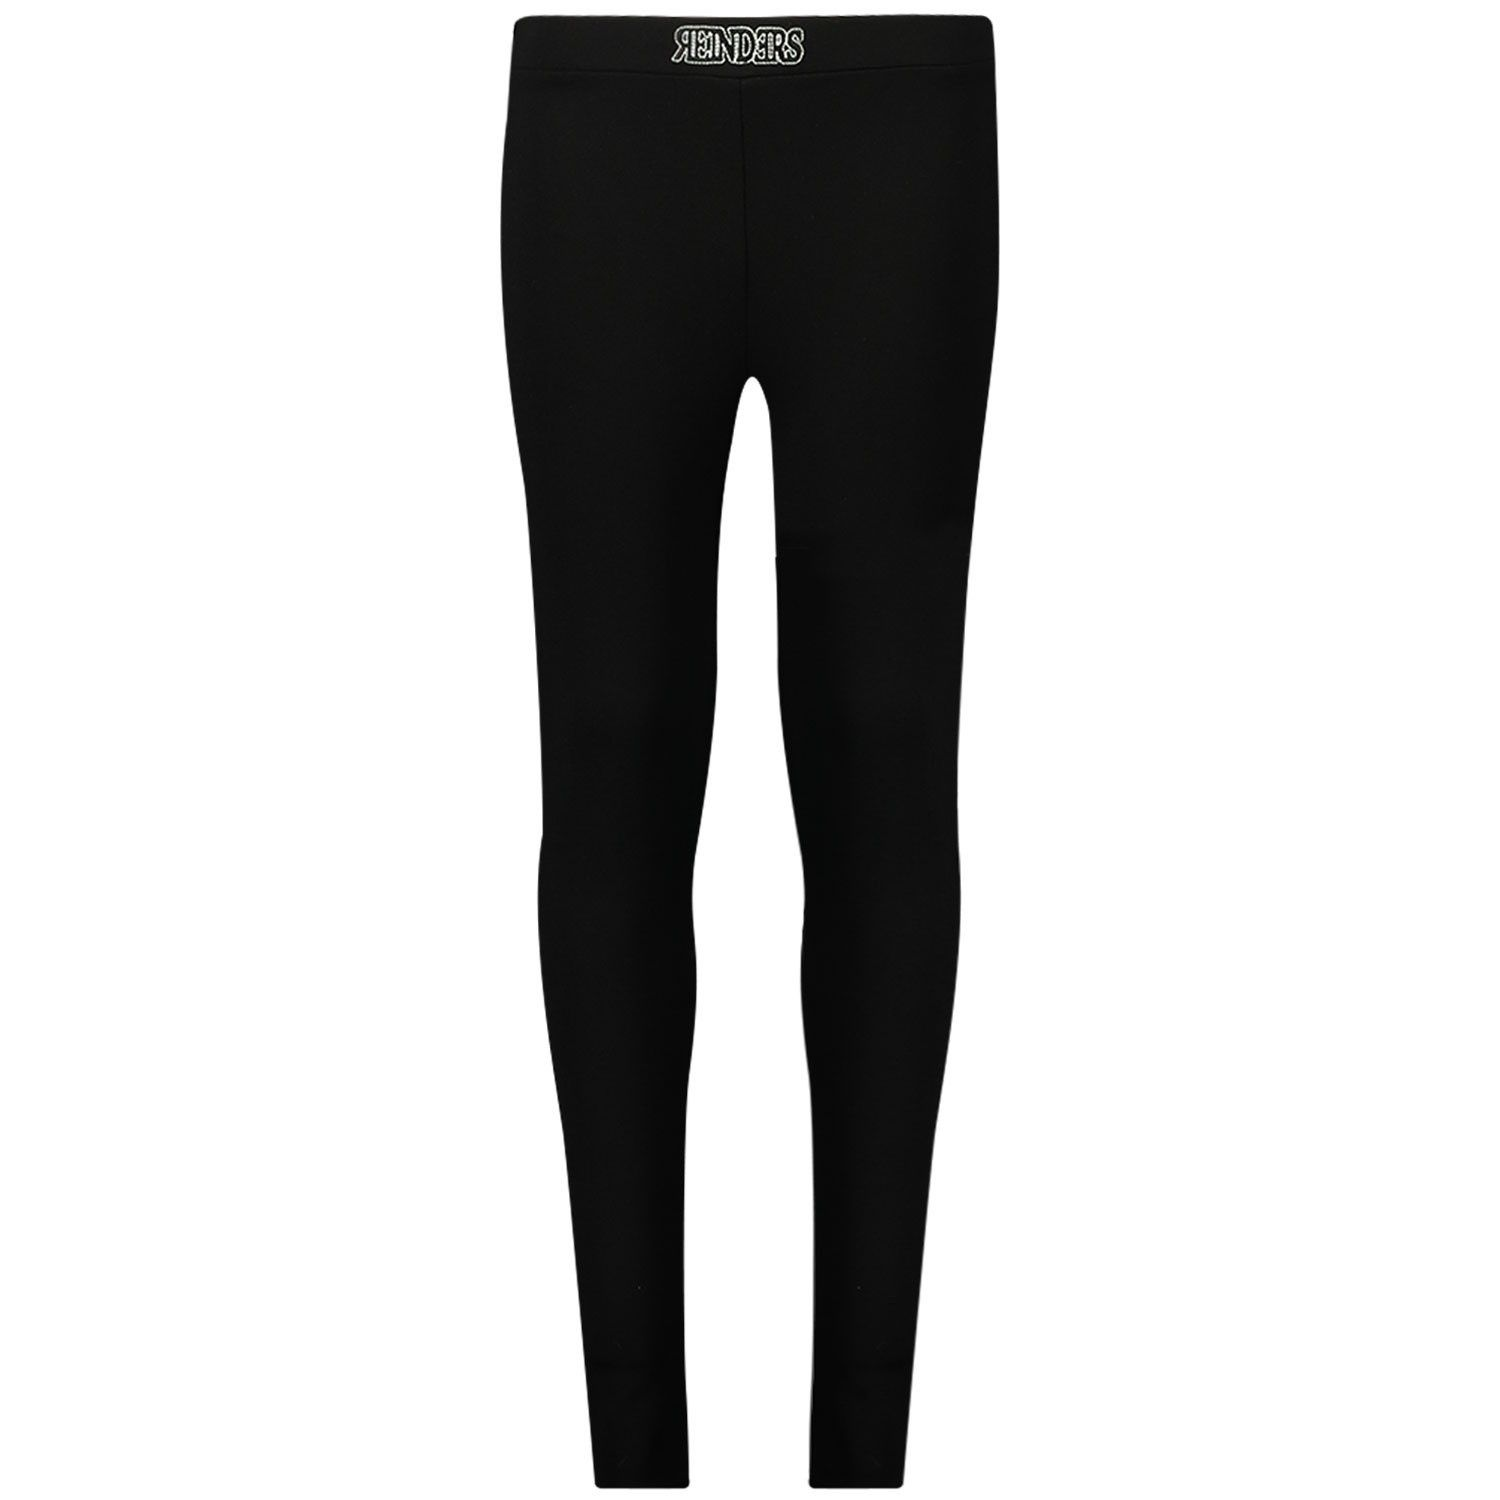 Picture of Reinders XG1203 kids tights black